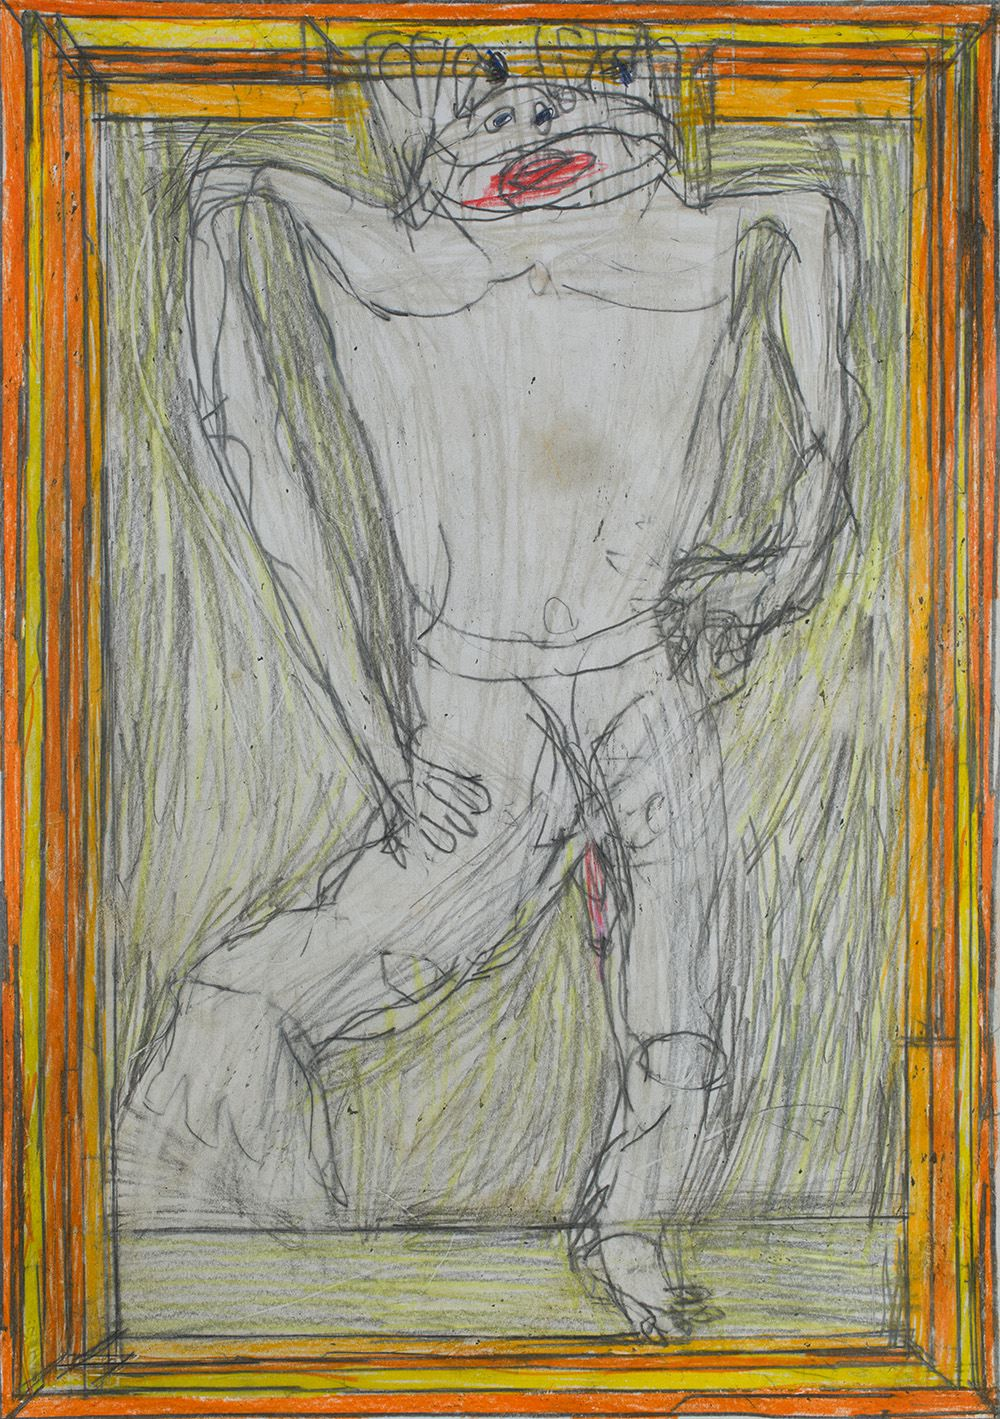 Josef Hofer Untitled, 2009 Graphite, colored pencil/paper 11.65 x 16.54 inches 29.6 x 42 cm JHo 14